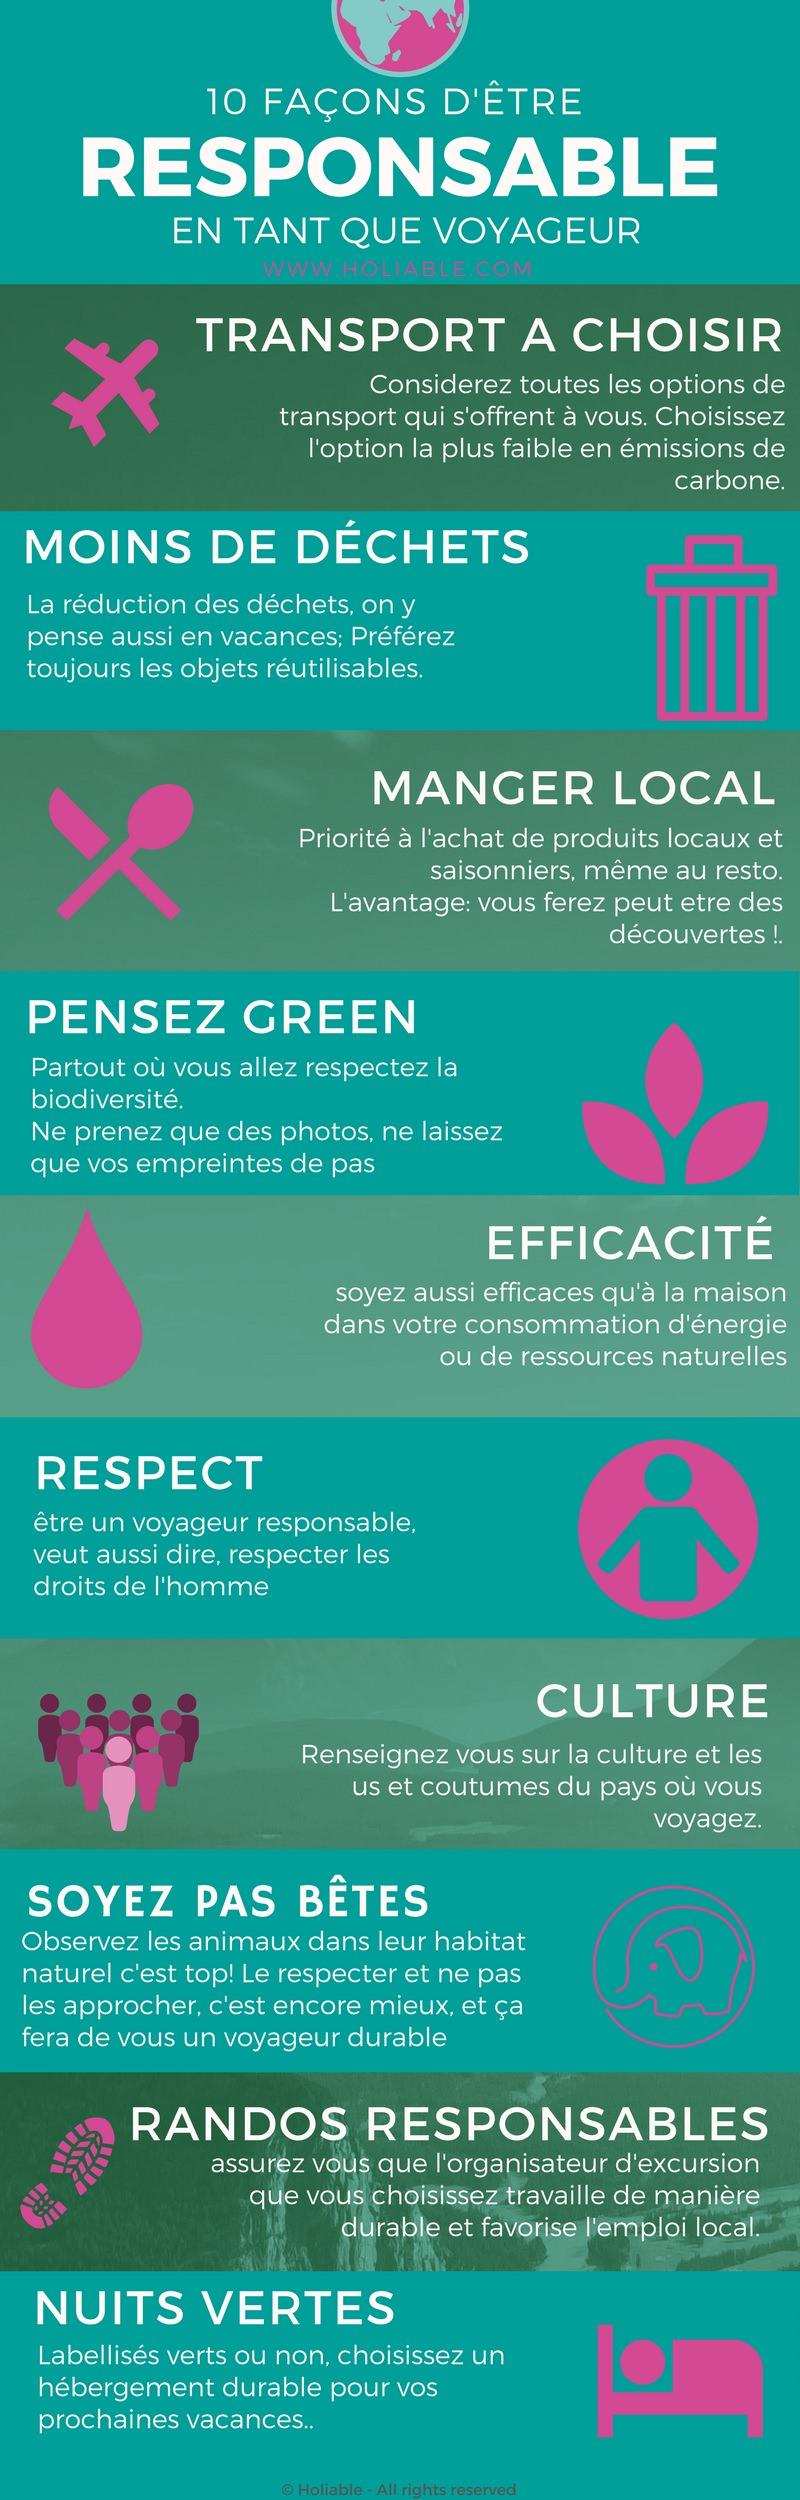 infographie voyageur responsable